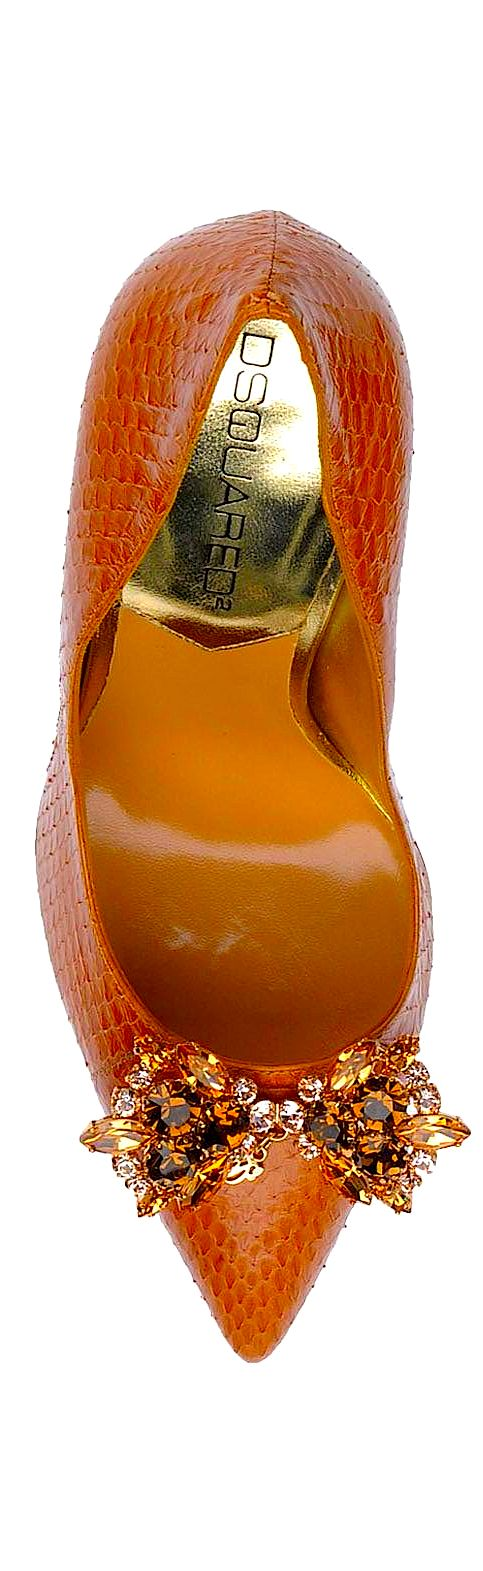 Dsquared2 www.SocietyOfWomenWhoLoveShoes.org Twitter @ThePowerofShoes Instagram @SocietyOfWomenWhoLoveShoes